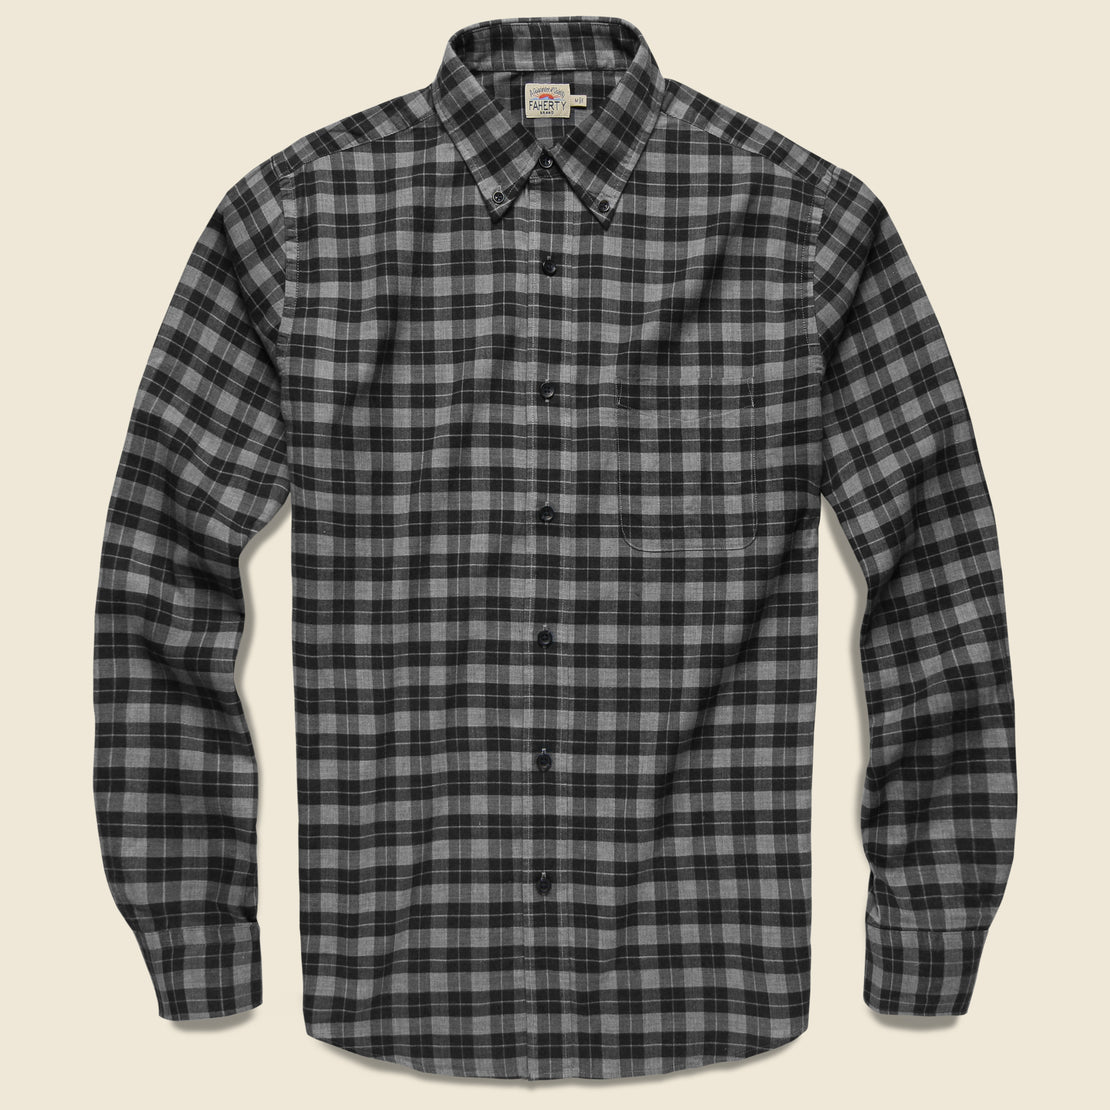 Faherty Everyday Shirt - Grey Charcoal Gingham